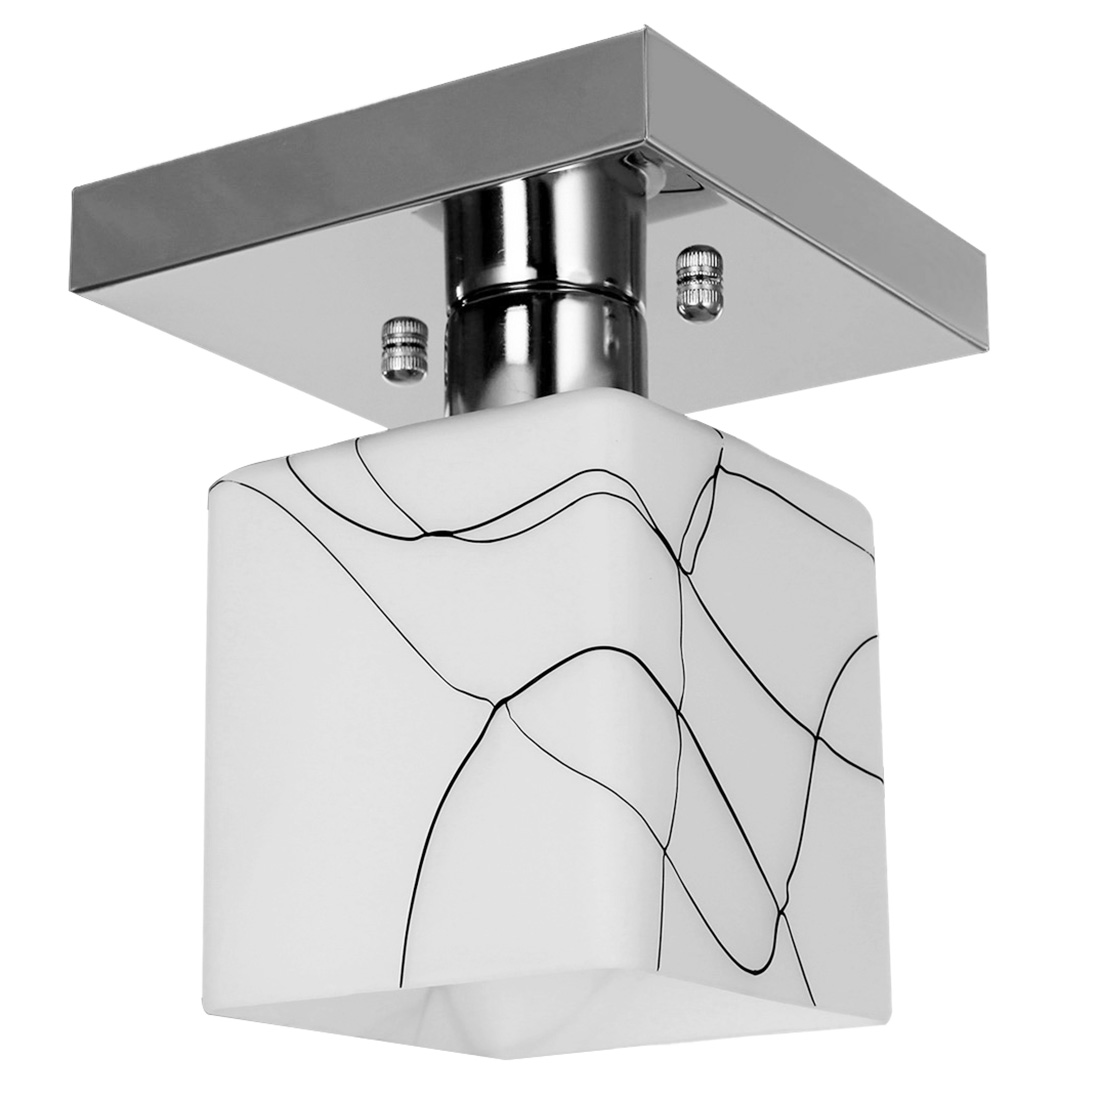 Diffused Light Fixture PromotionShop for Promotional Diffused